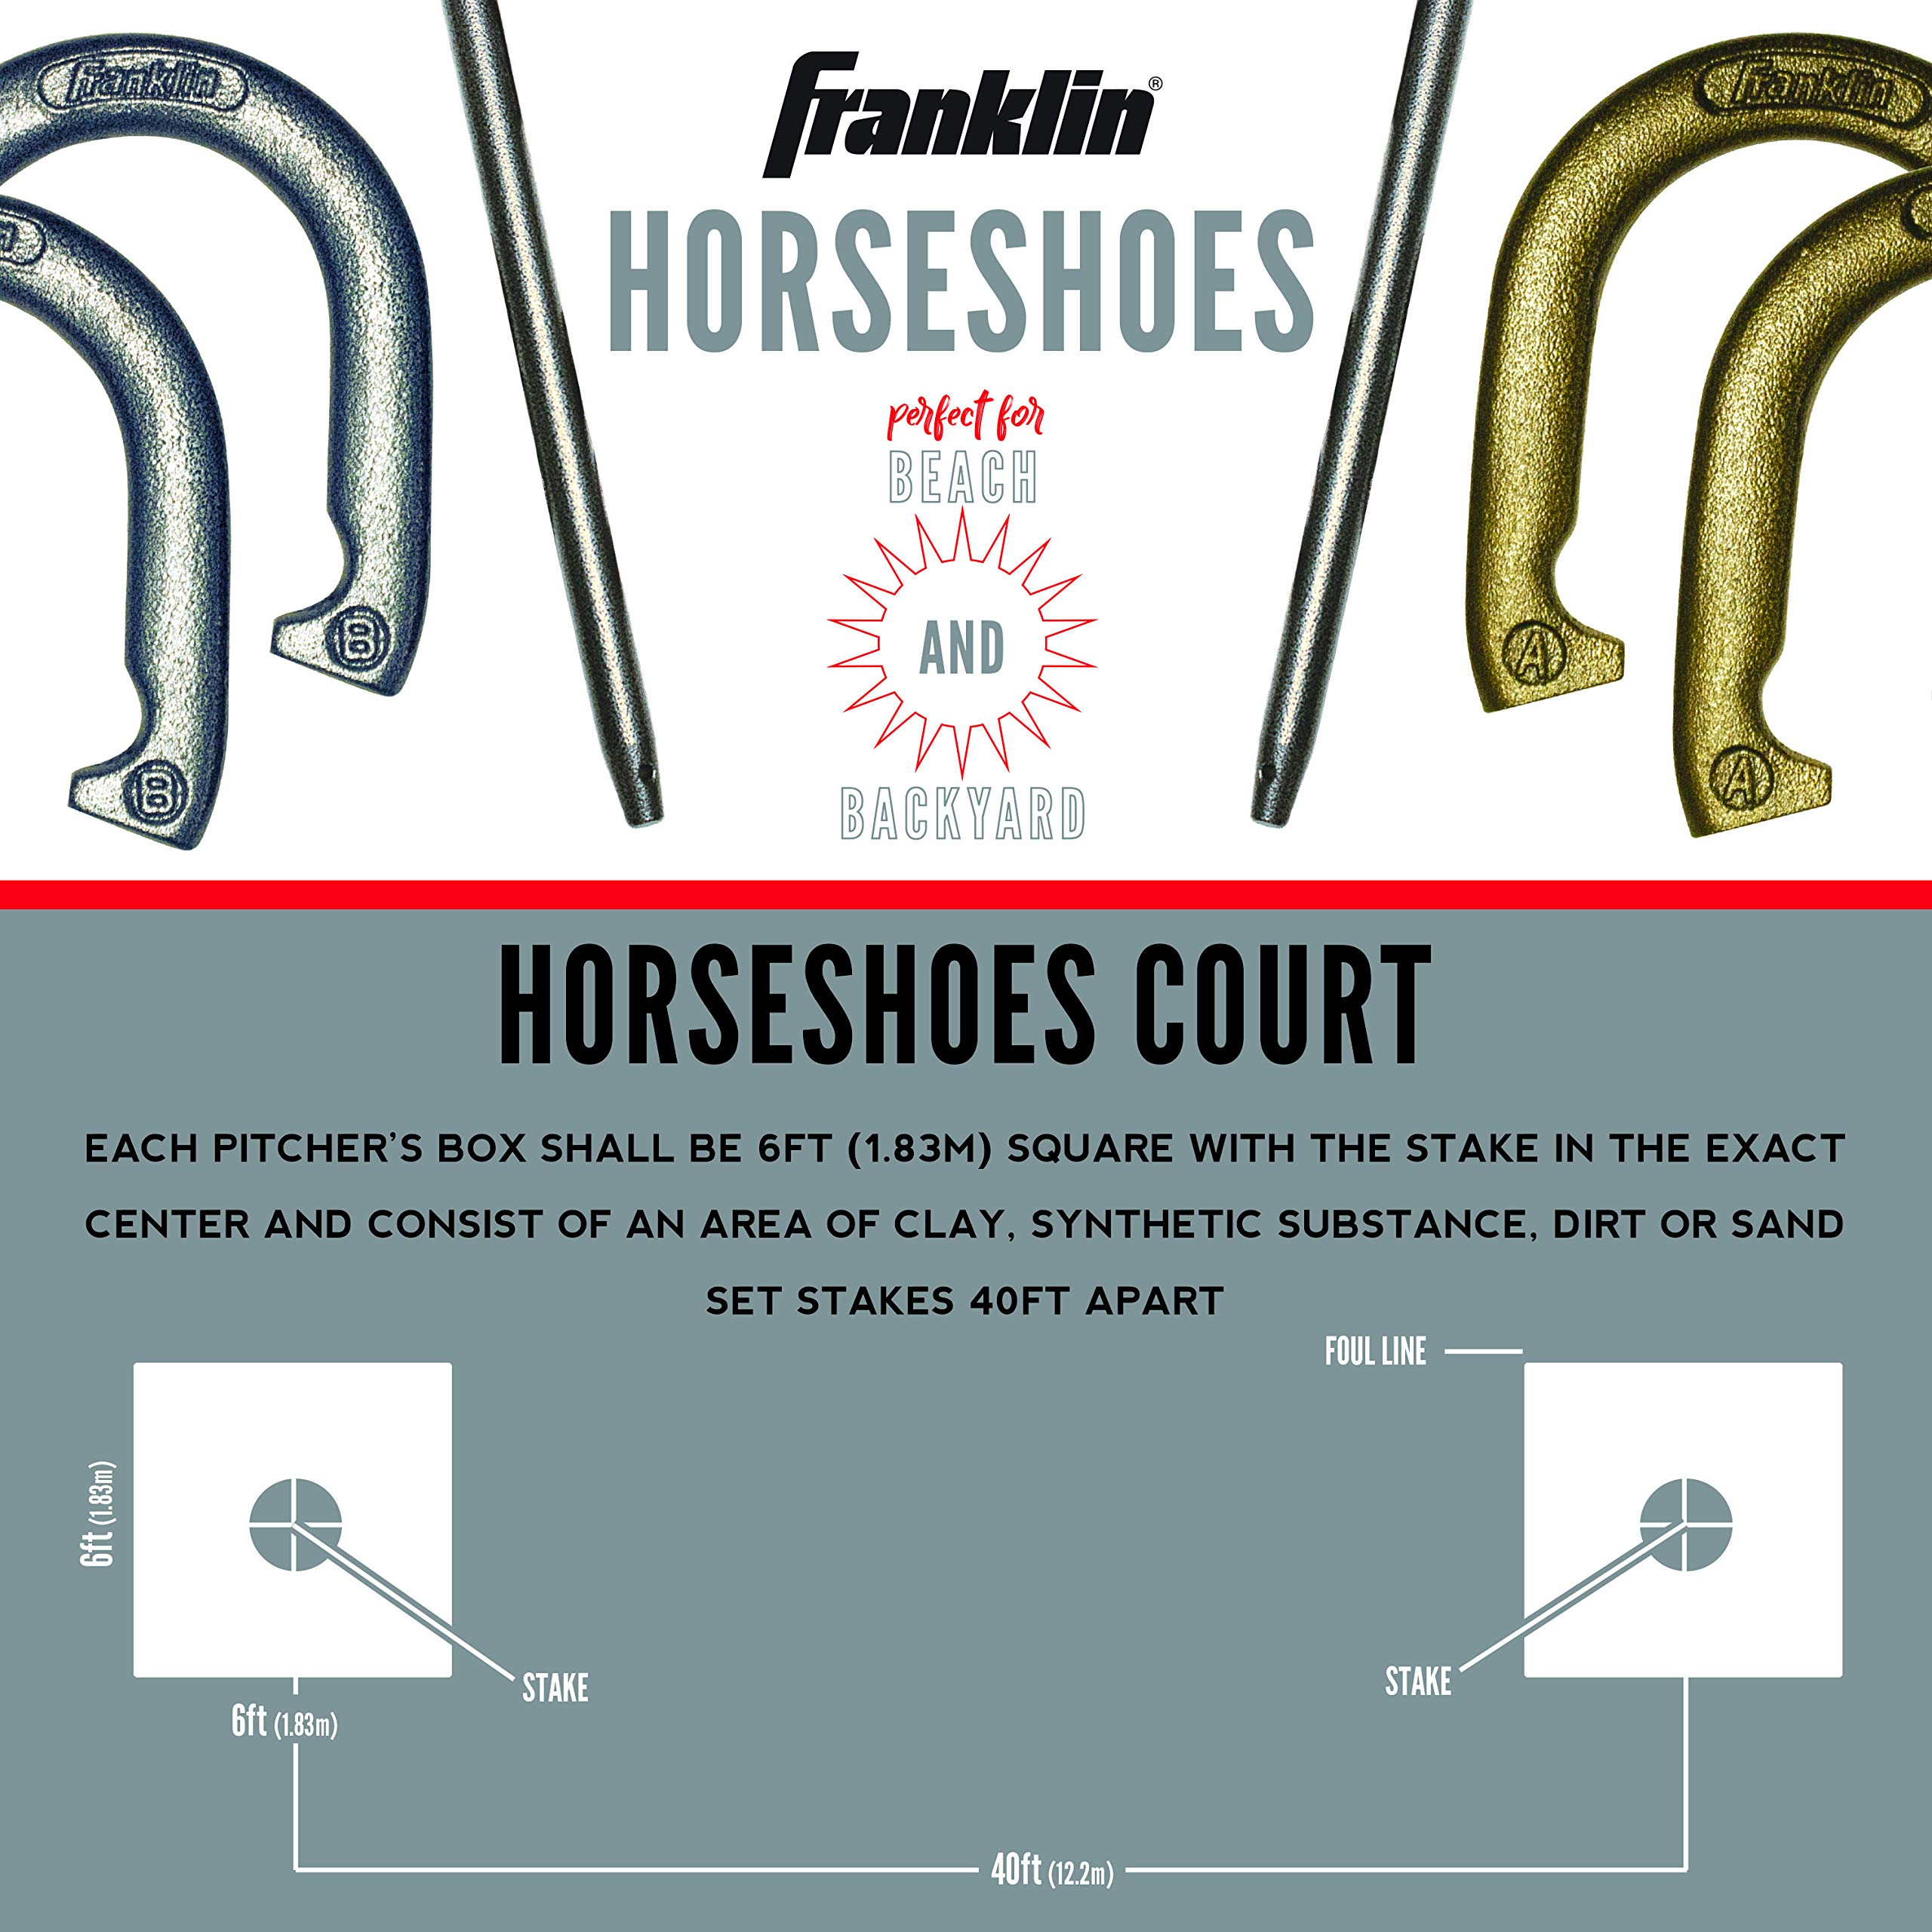 Franklin Sports Horseshoes Set - Includes 4 Official Size and Weight Iron Horseshoes and 2 Steel Stakes - Beach or Backyard Horseshoe Play - Starter Set by Franklin Sports (Image #4)